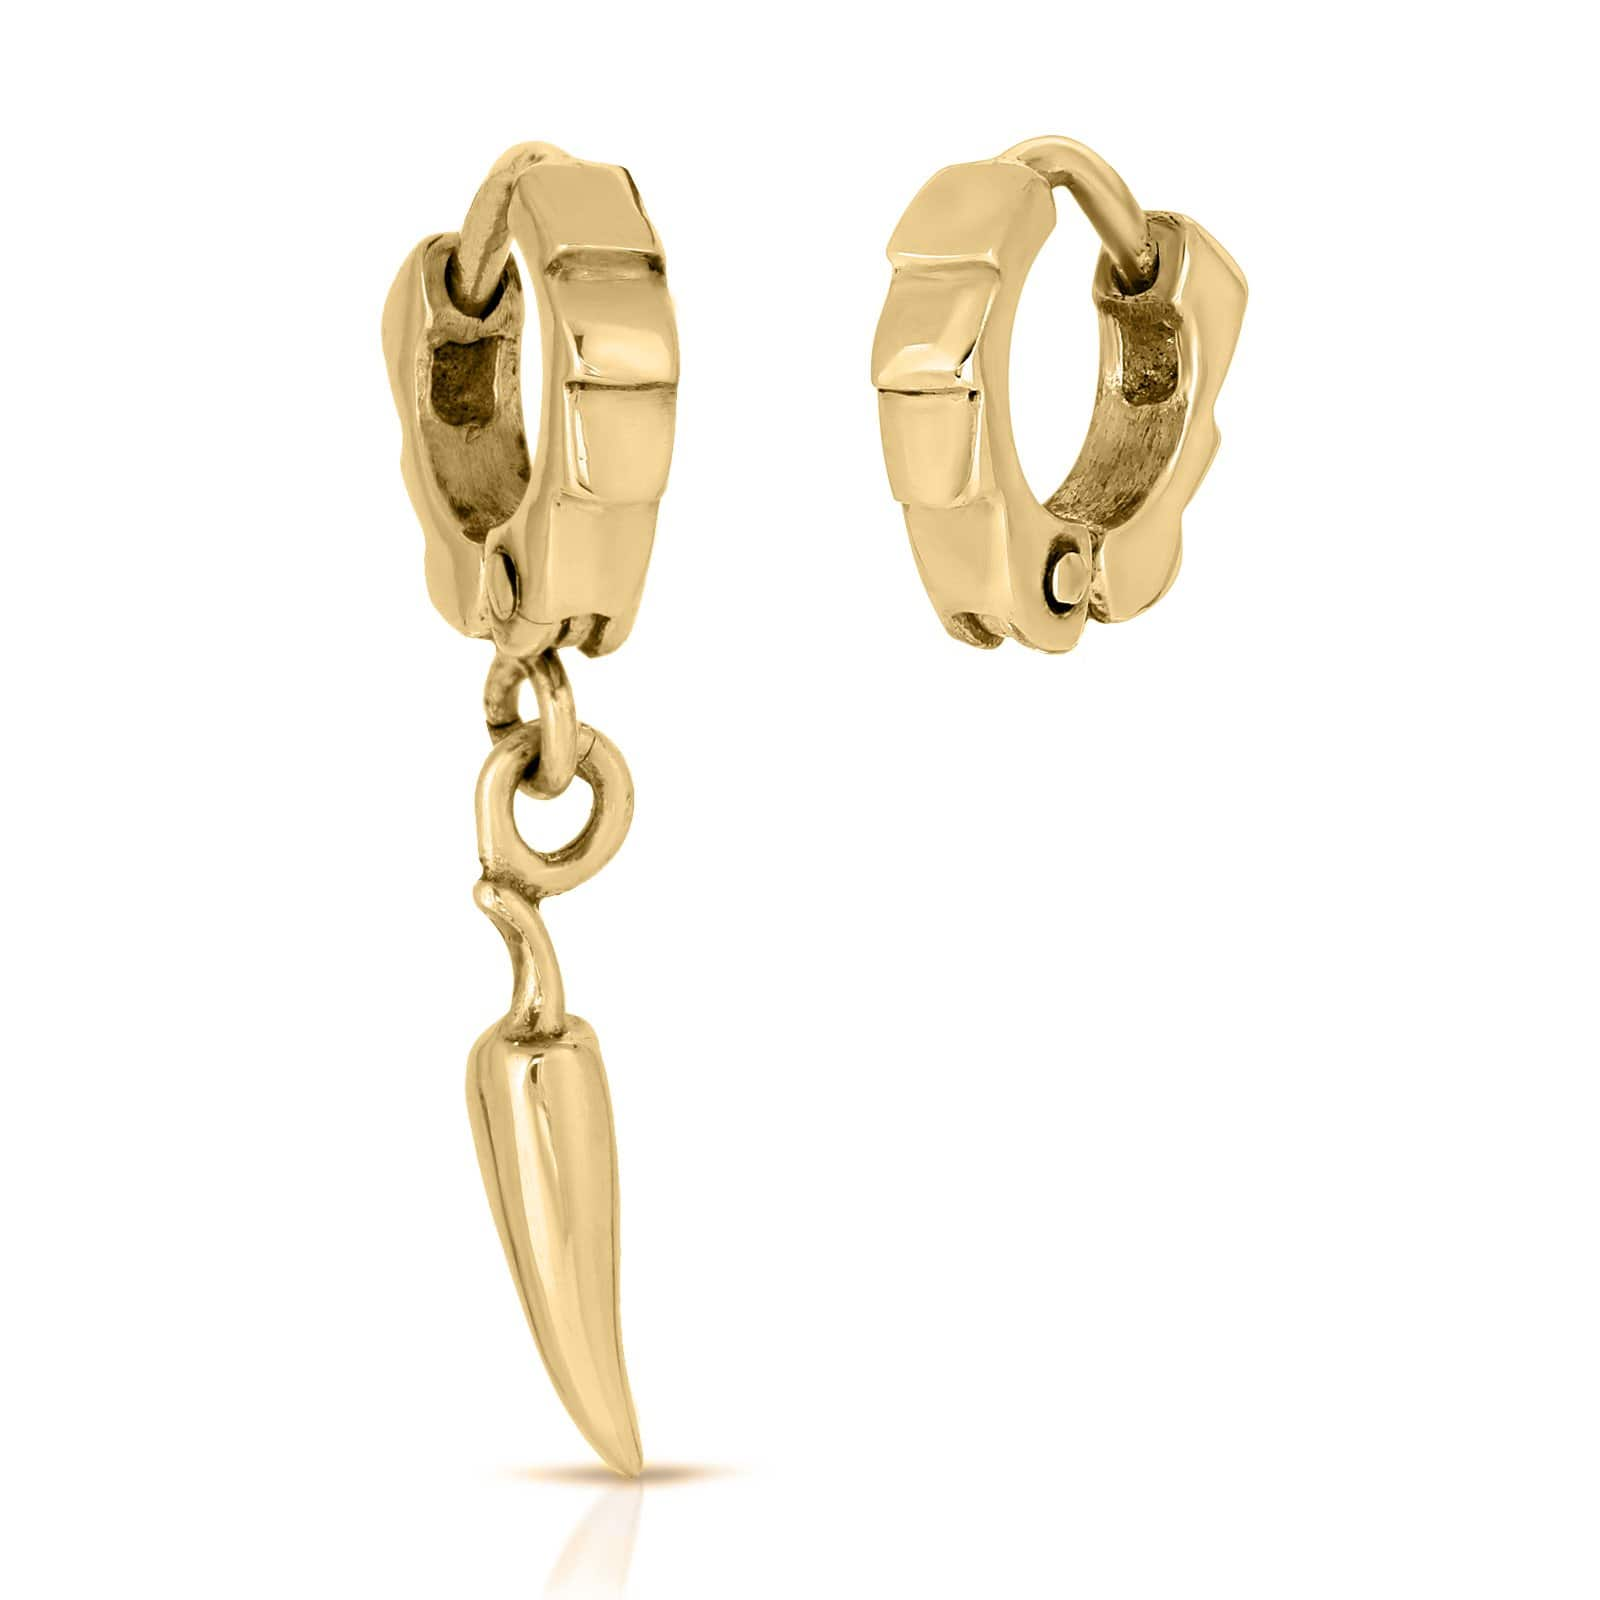 The W Brothers Premium Grade A 925 Sterling Silver Asymmetrical Chili Pepper Earrings, perfect for a fashionable statement for men and women's jewelry accessory. Available in silver, gold, rose gold, black nickel at www.thewbros.com